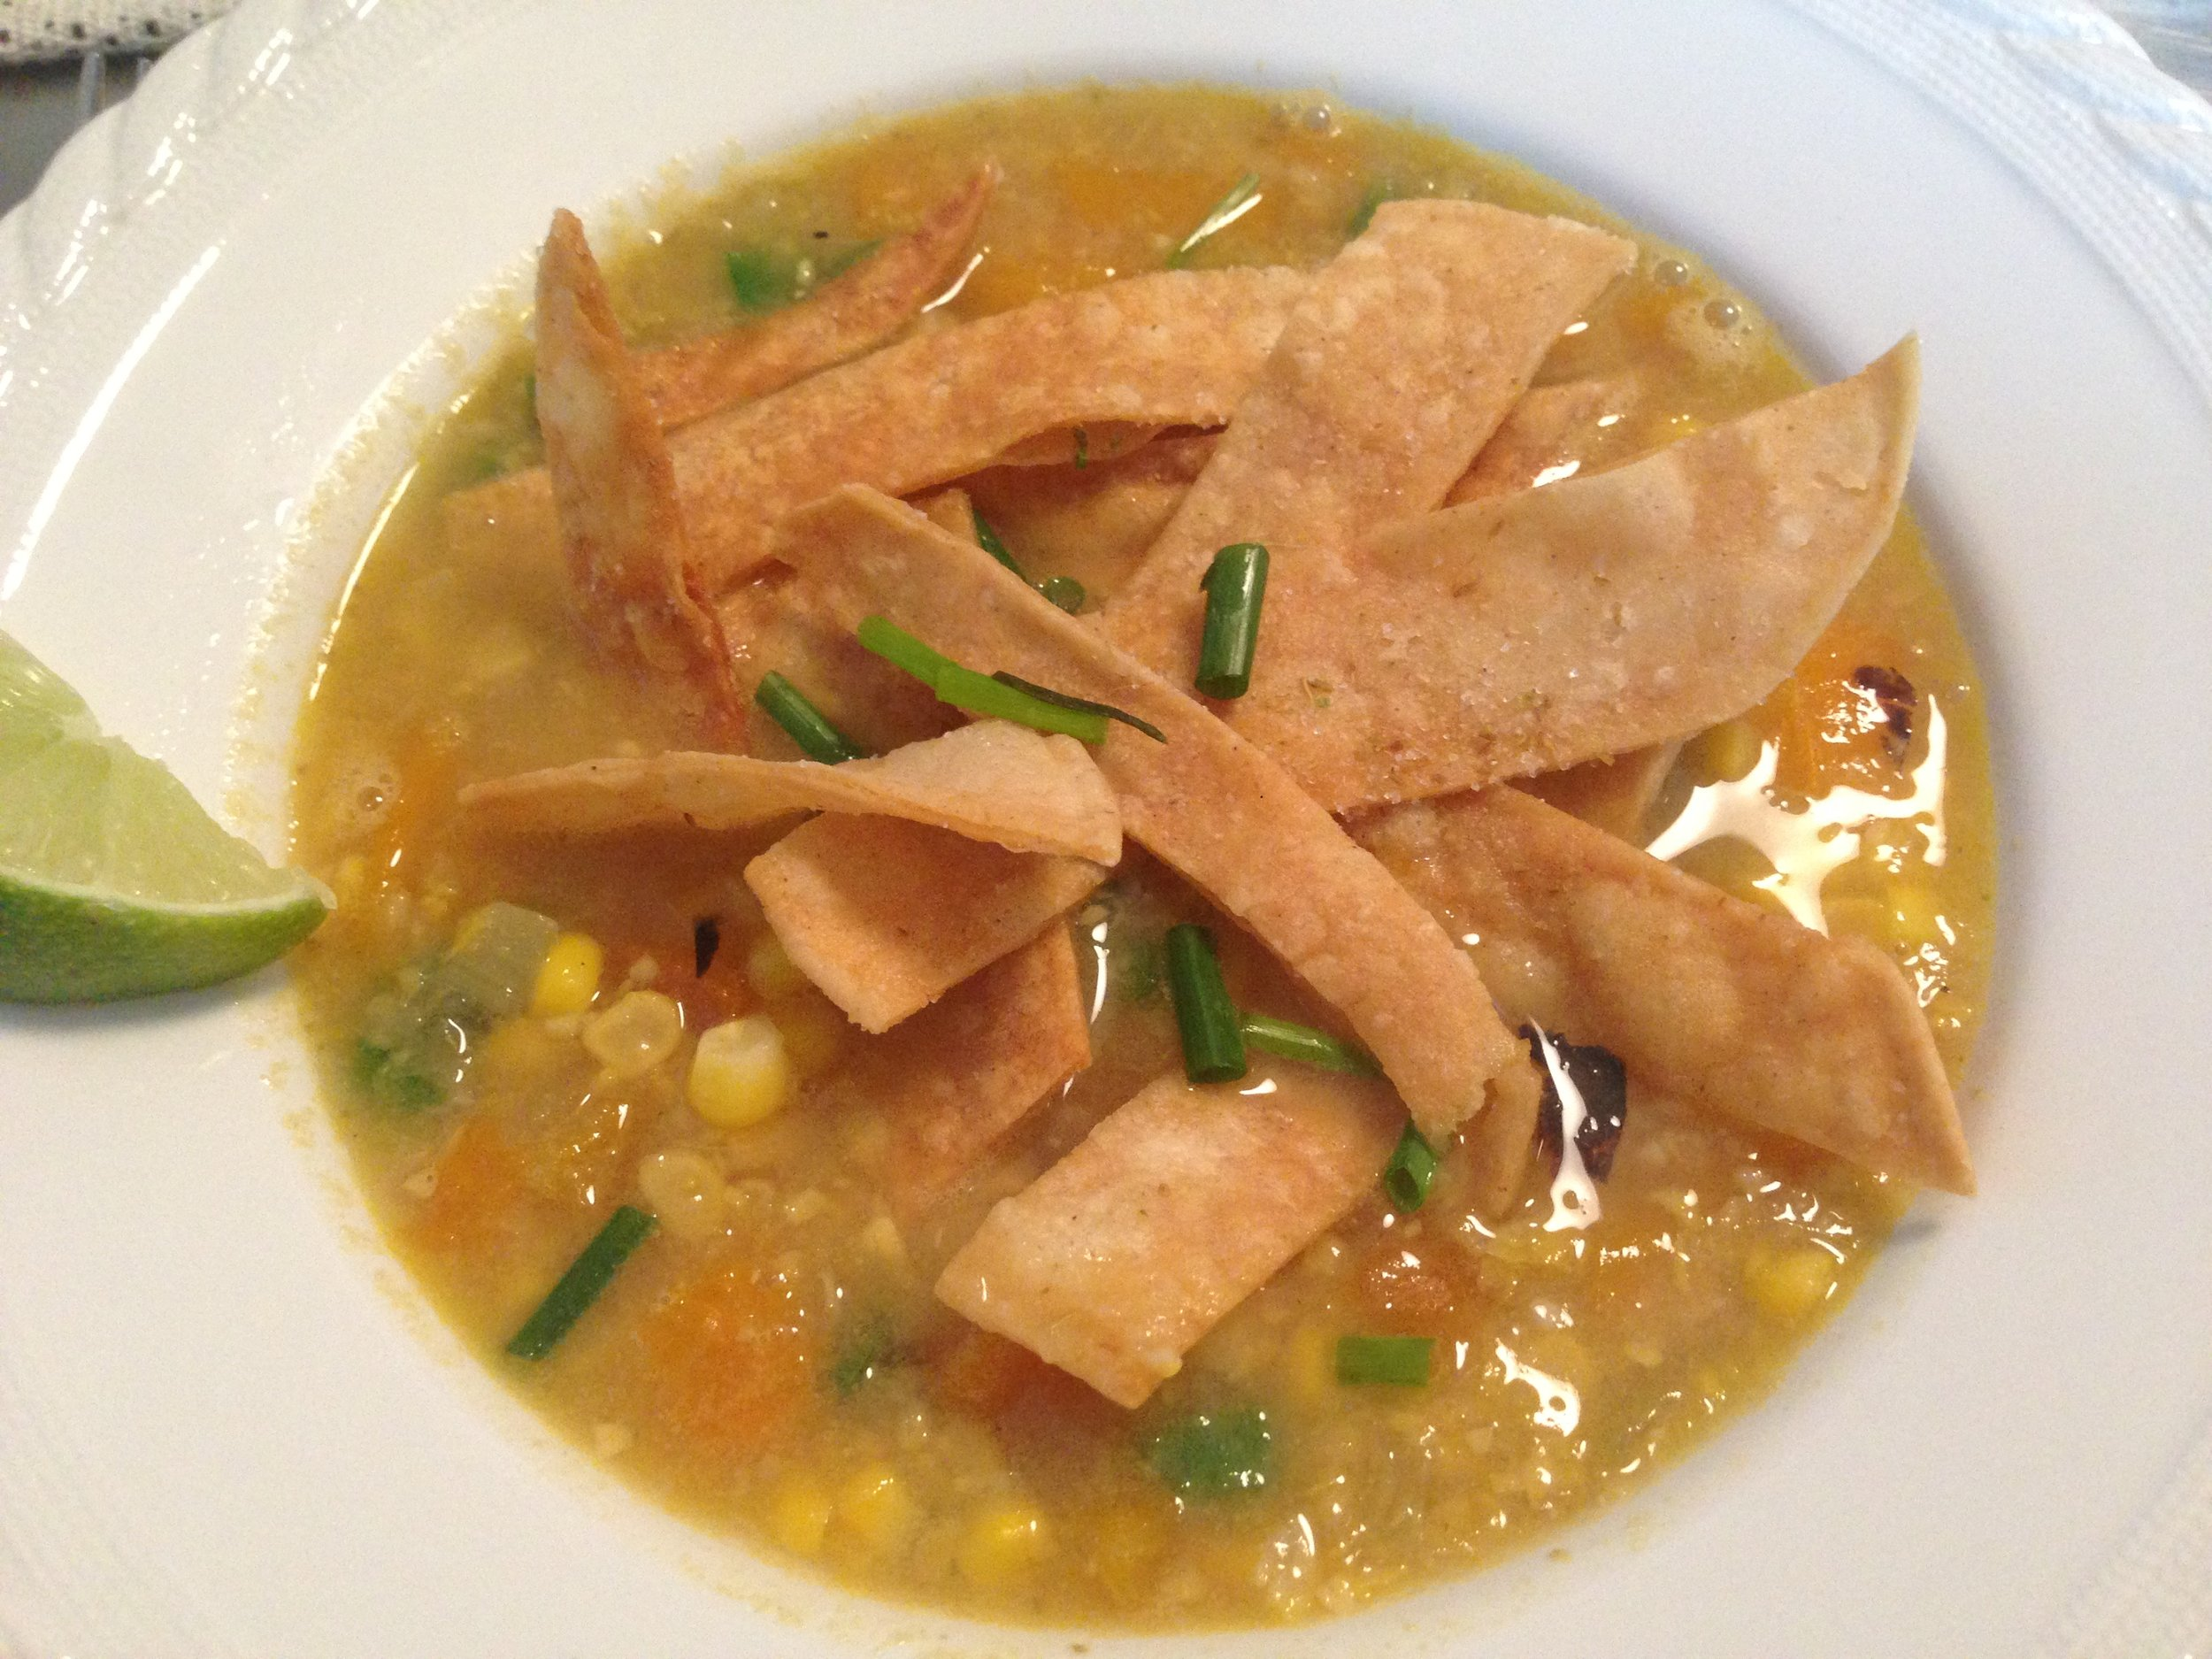 The Corn Lime Soup topped with the Cumin Lime Tortilla Strips.